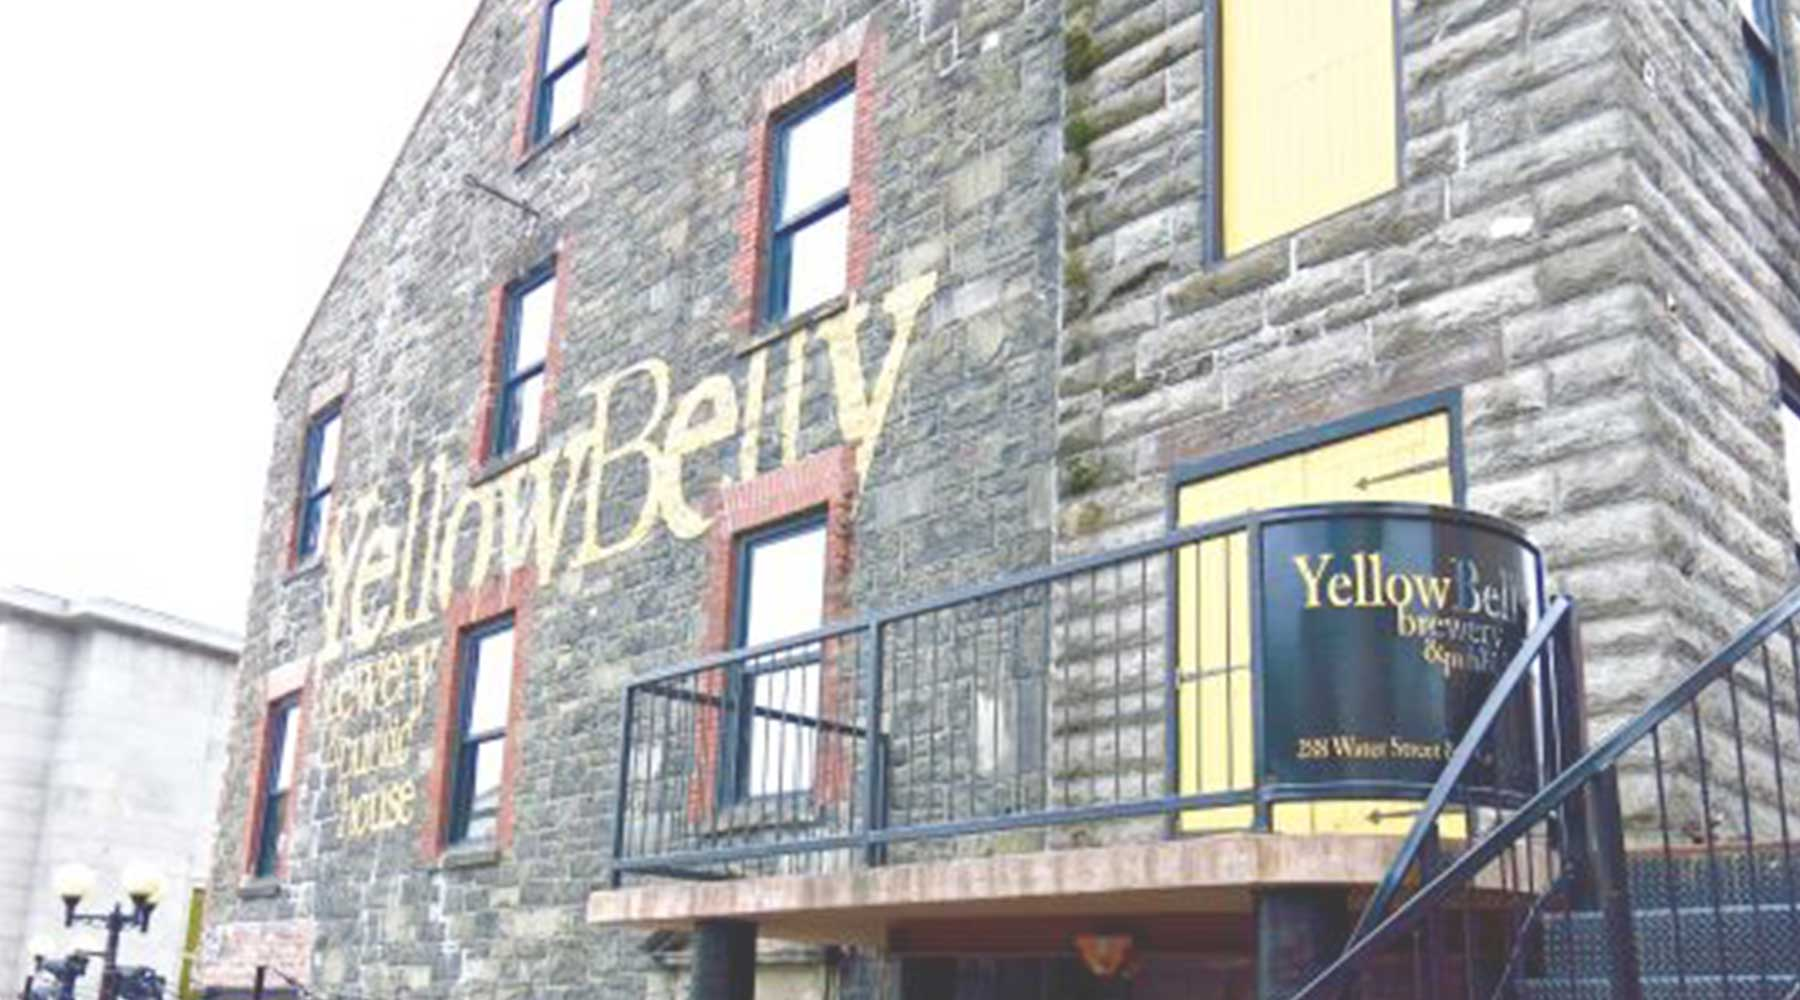 Yellowbelly Brewery & Public House | Just Wine